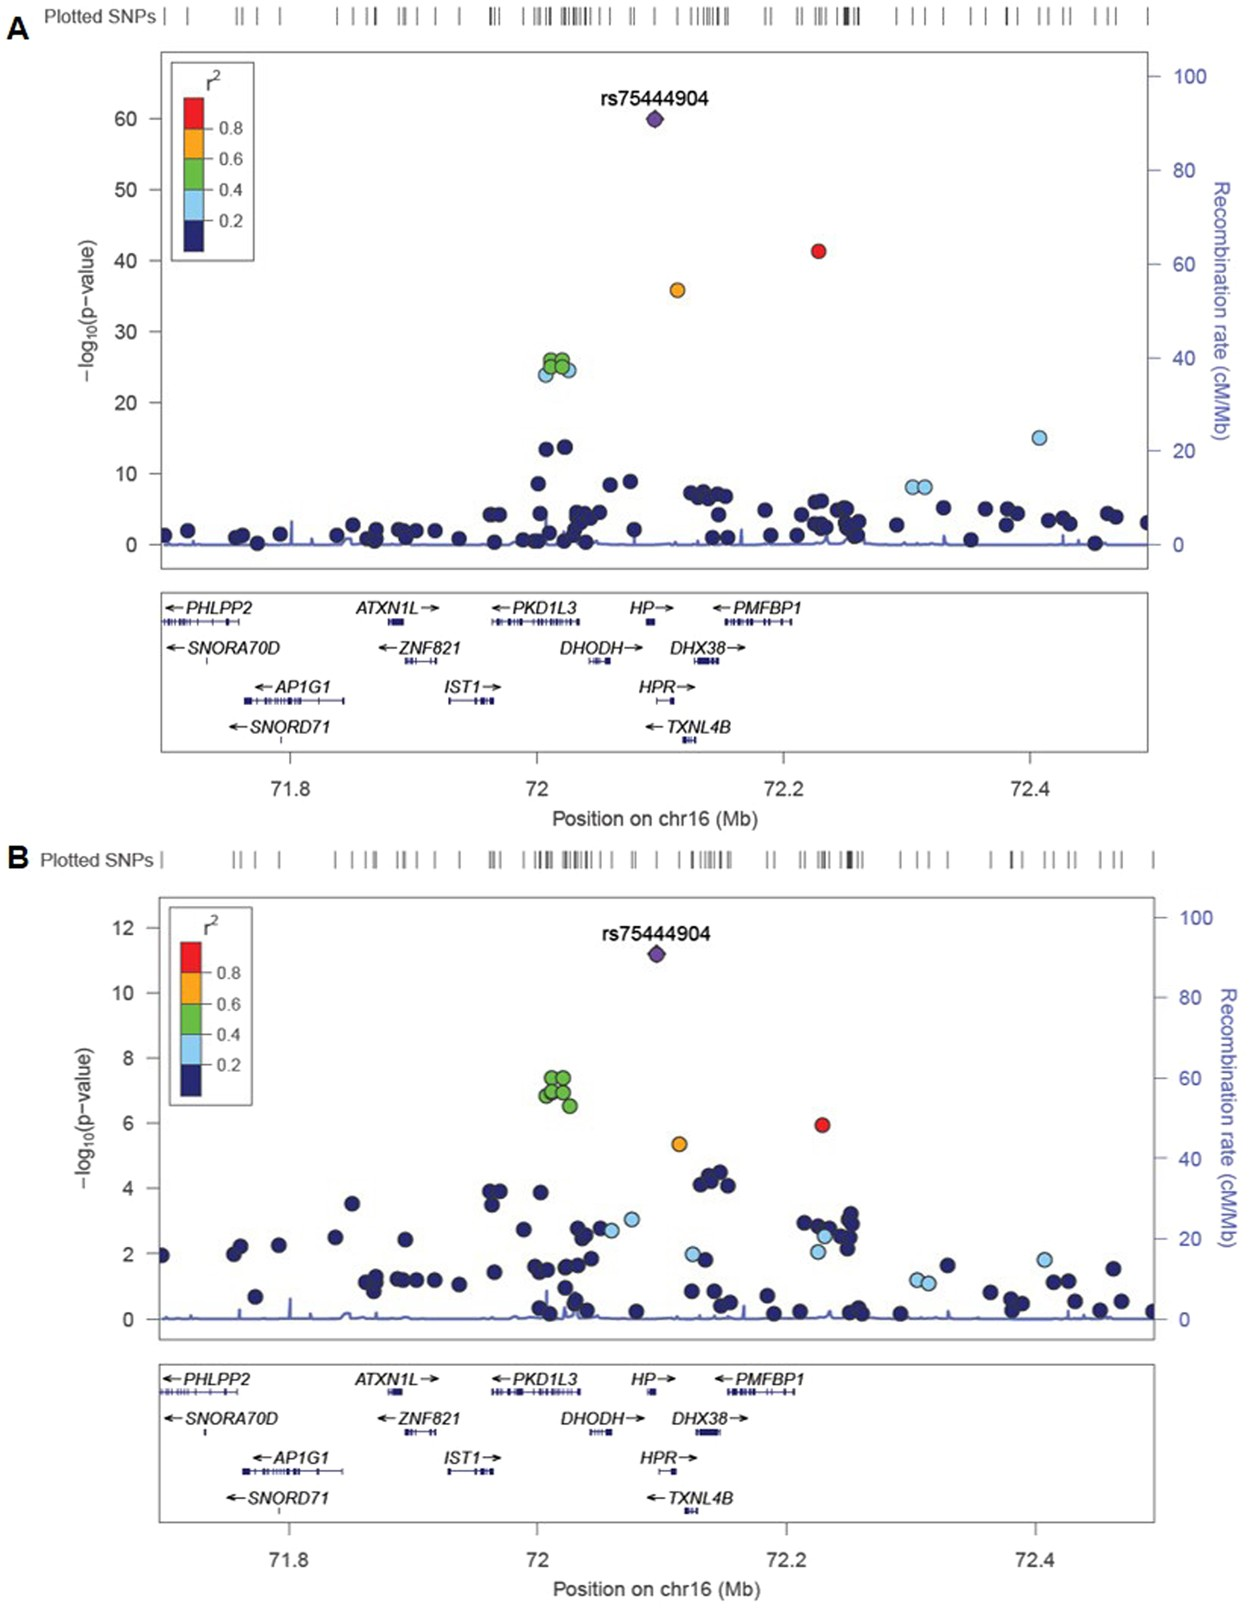 Genetic Markers For Urine Haptoglobin Is Associated With Decline In Mdc300120151 Brushless Speed Controllers 1hp And Over Renal Function Type 2 Diabetes East Asians Scientific Reports